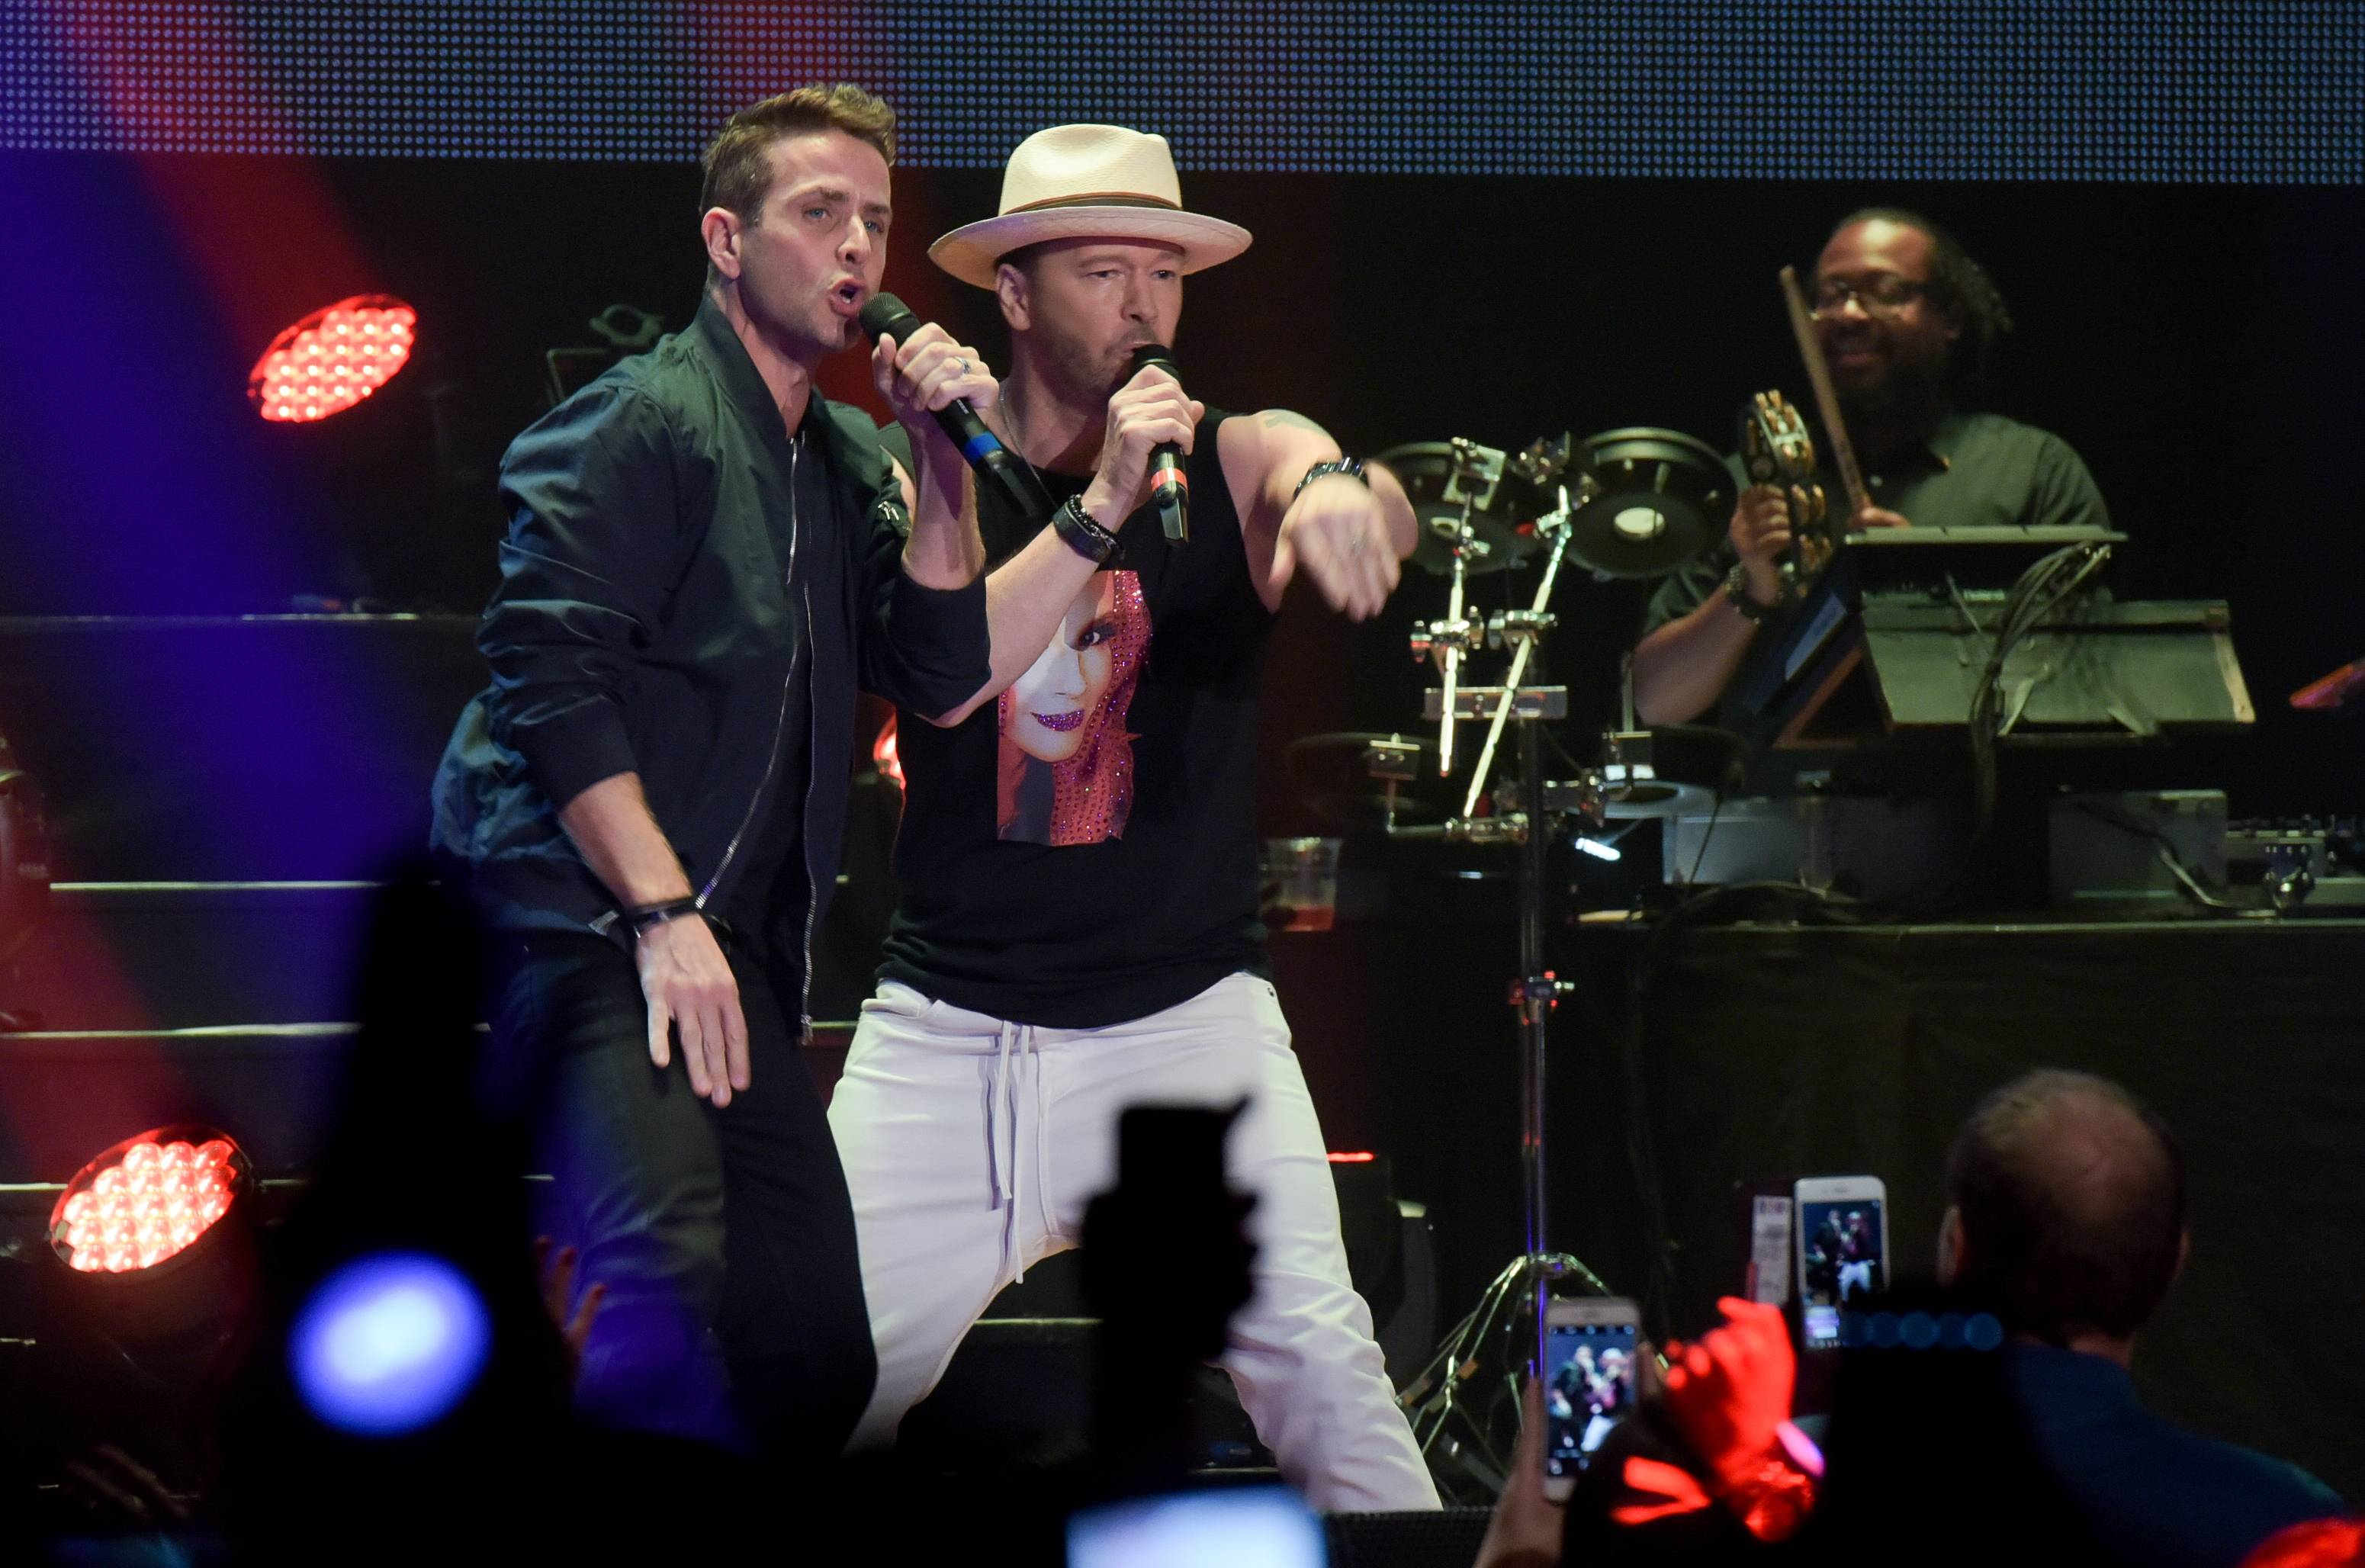 Fellow New Kids on the Block member Joey McIntyre, left, performs alongside Donnie Wahlberg on Monday during an autism benefit concert in St. Charles at the Arcada Theatre.